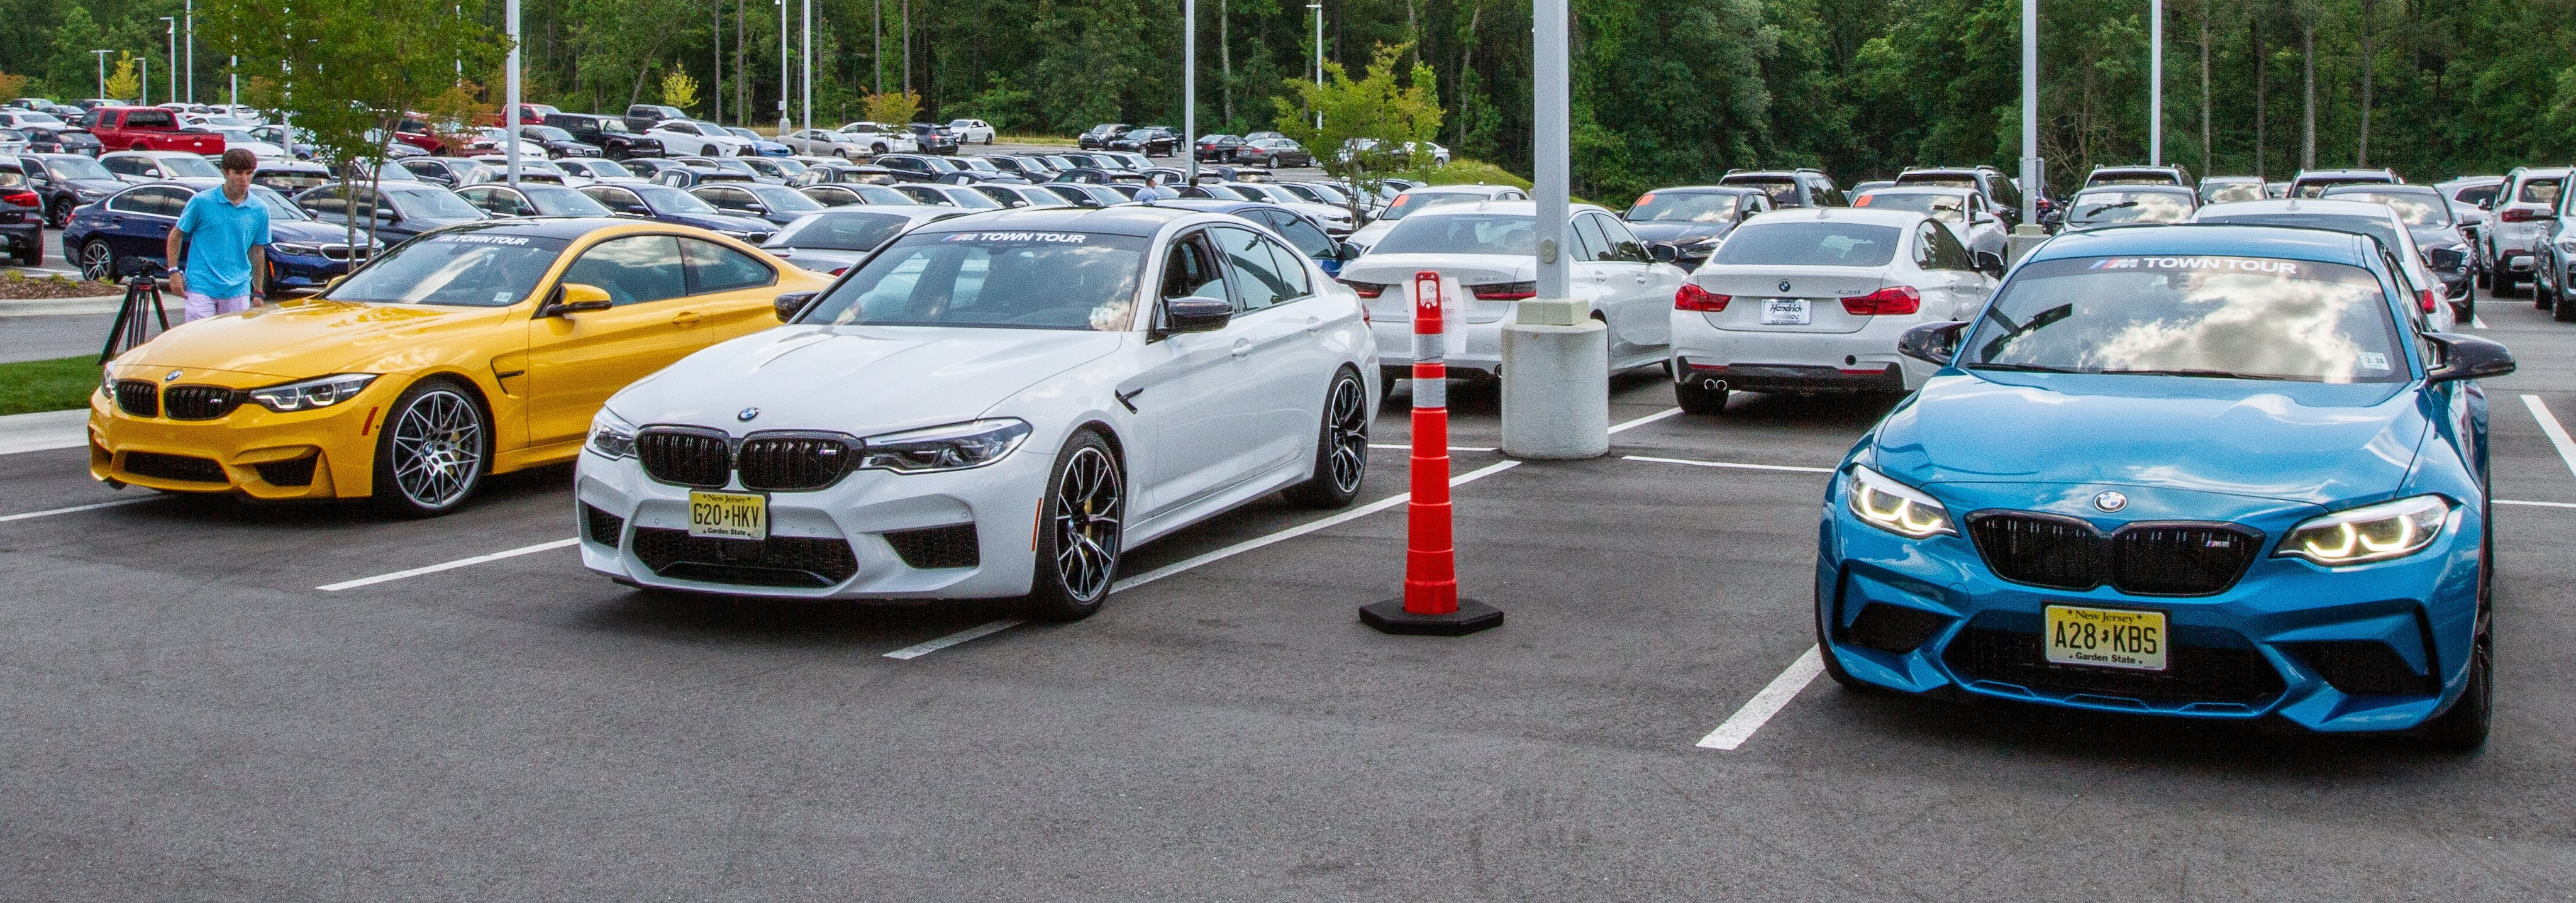 BMW Austin Yellow M4, white M5 Competition, and M2 Competition ready to drive at BMW of Southpoint's M Town Tour.